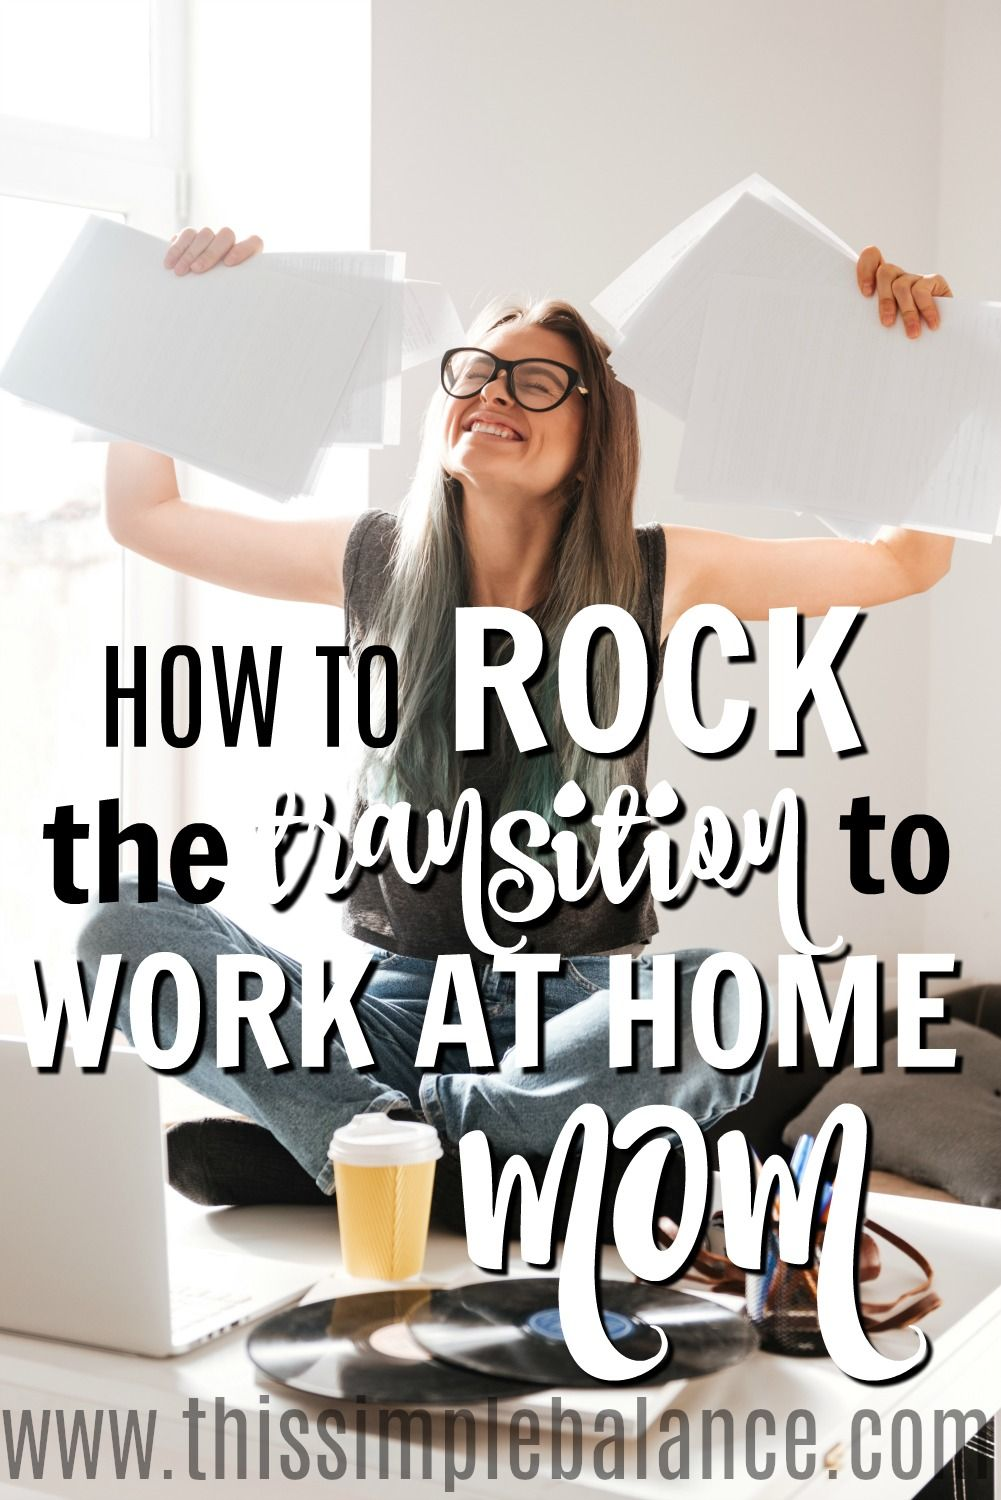 SAHM to Work at Home Mom 7 Ways to Rock It! Work from